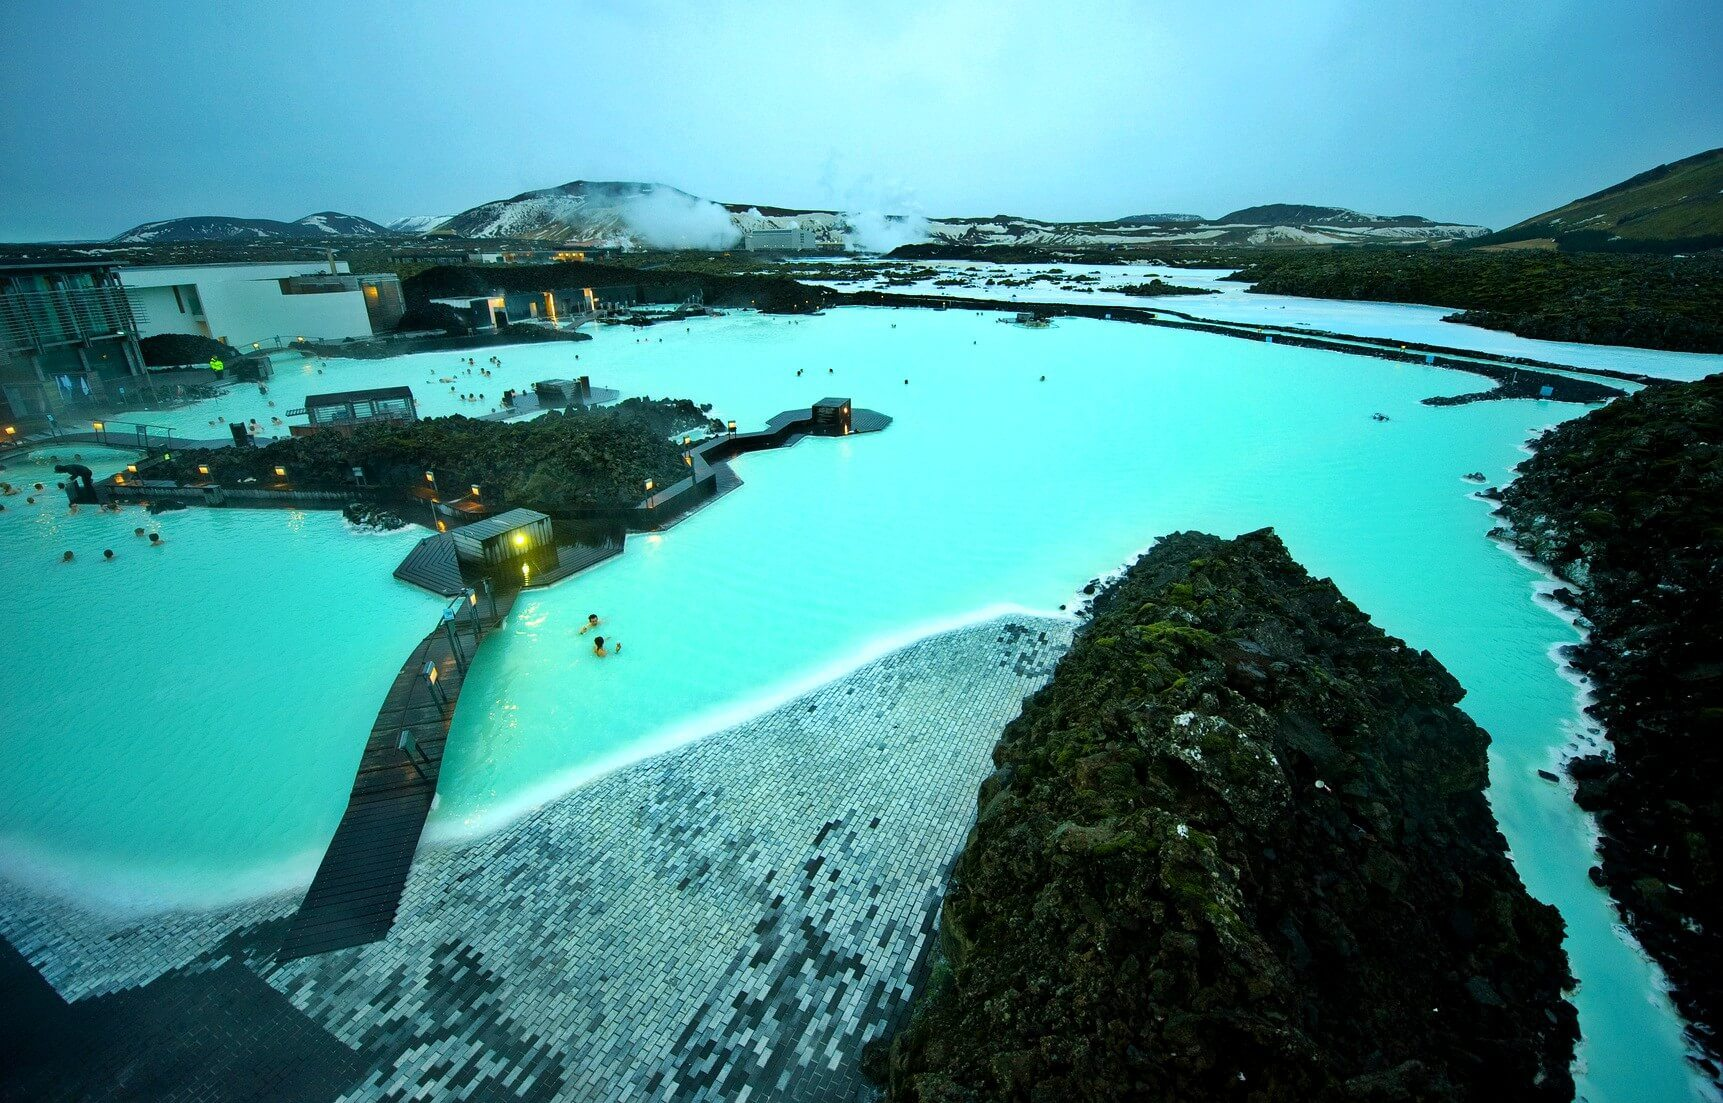 An exclusive look at the future of luxury hotels in for Hotels near the blue lagoon iceland